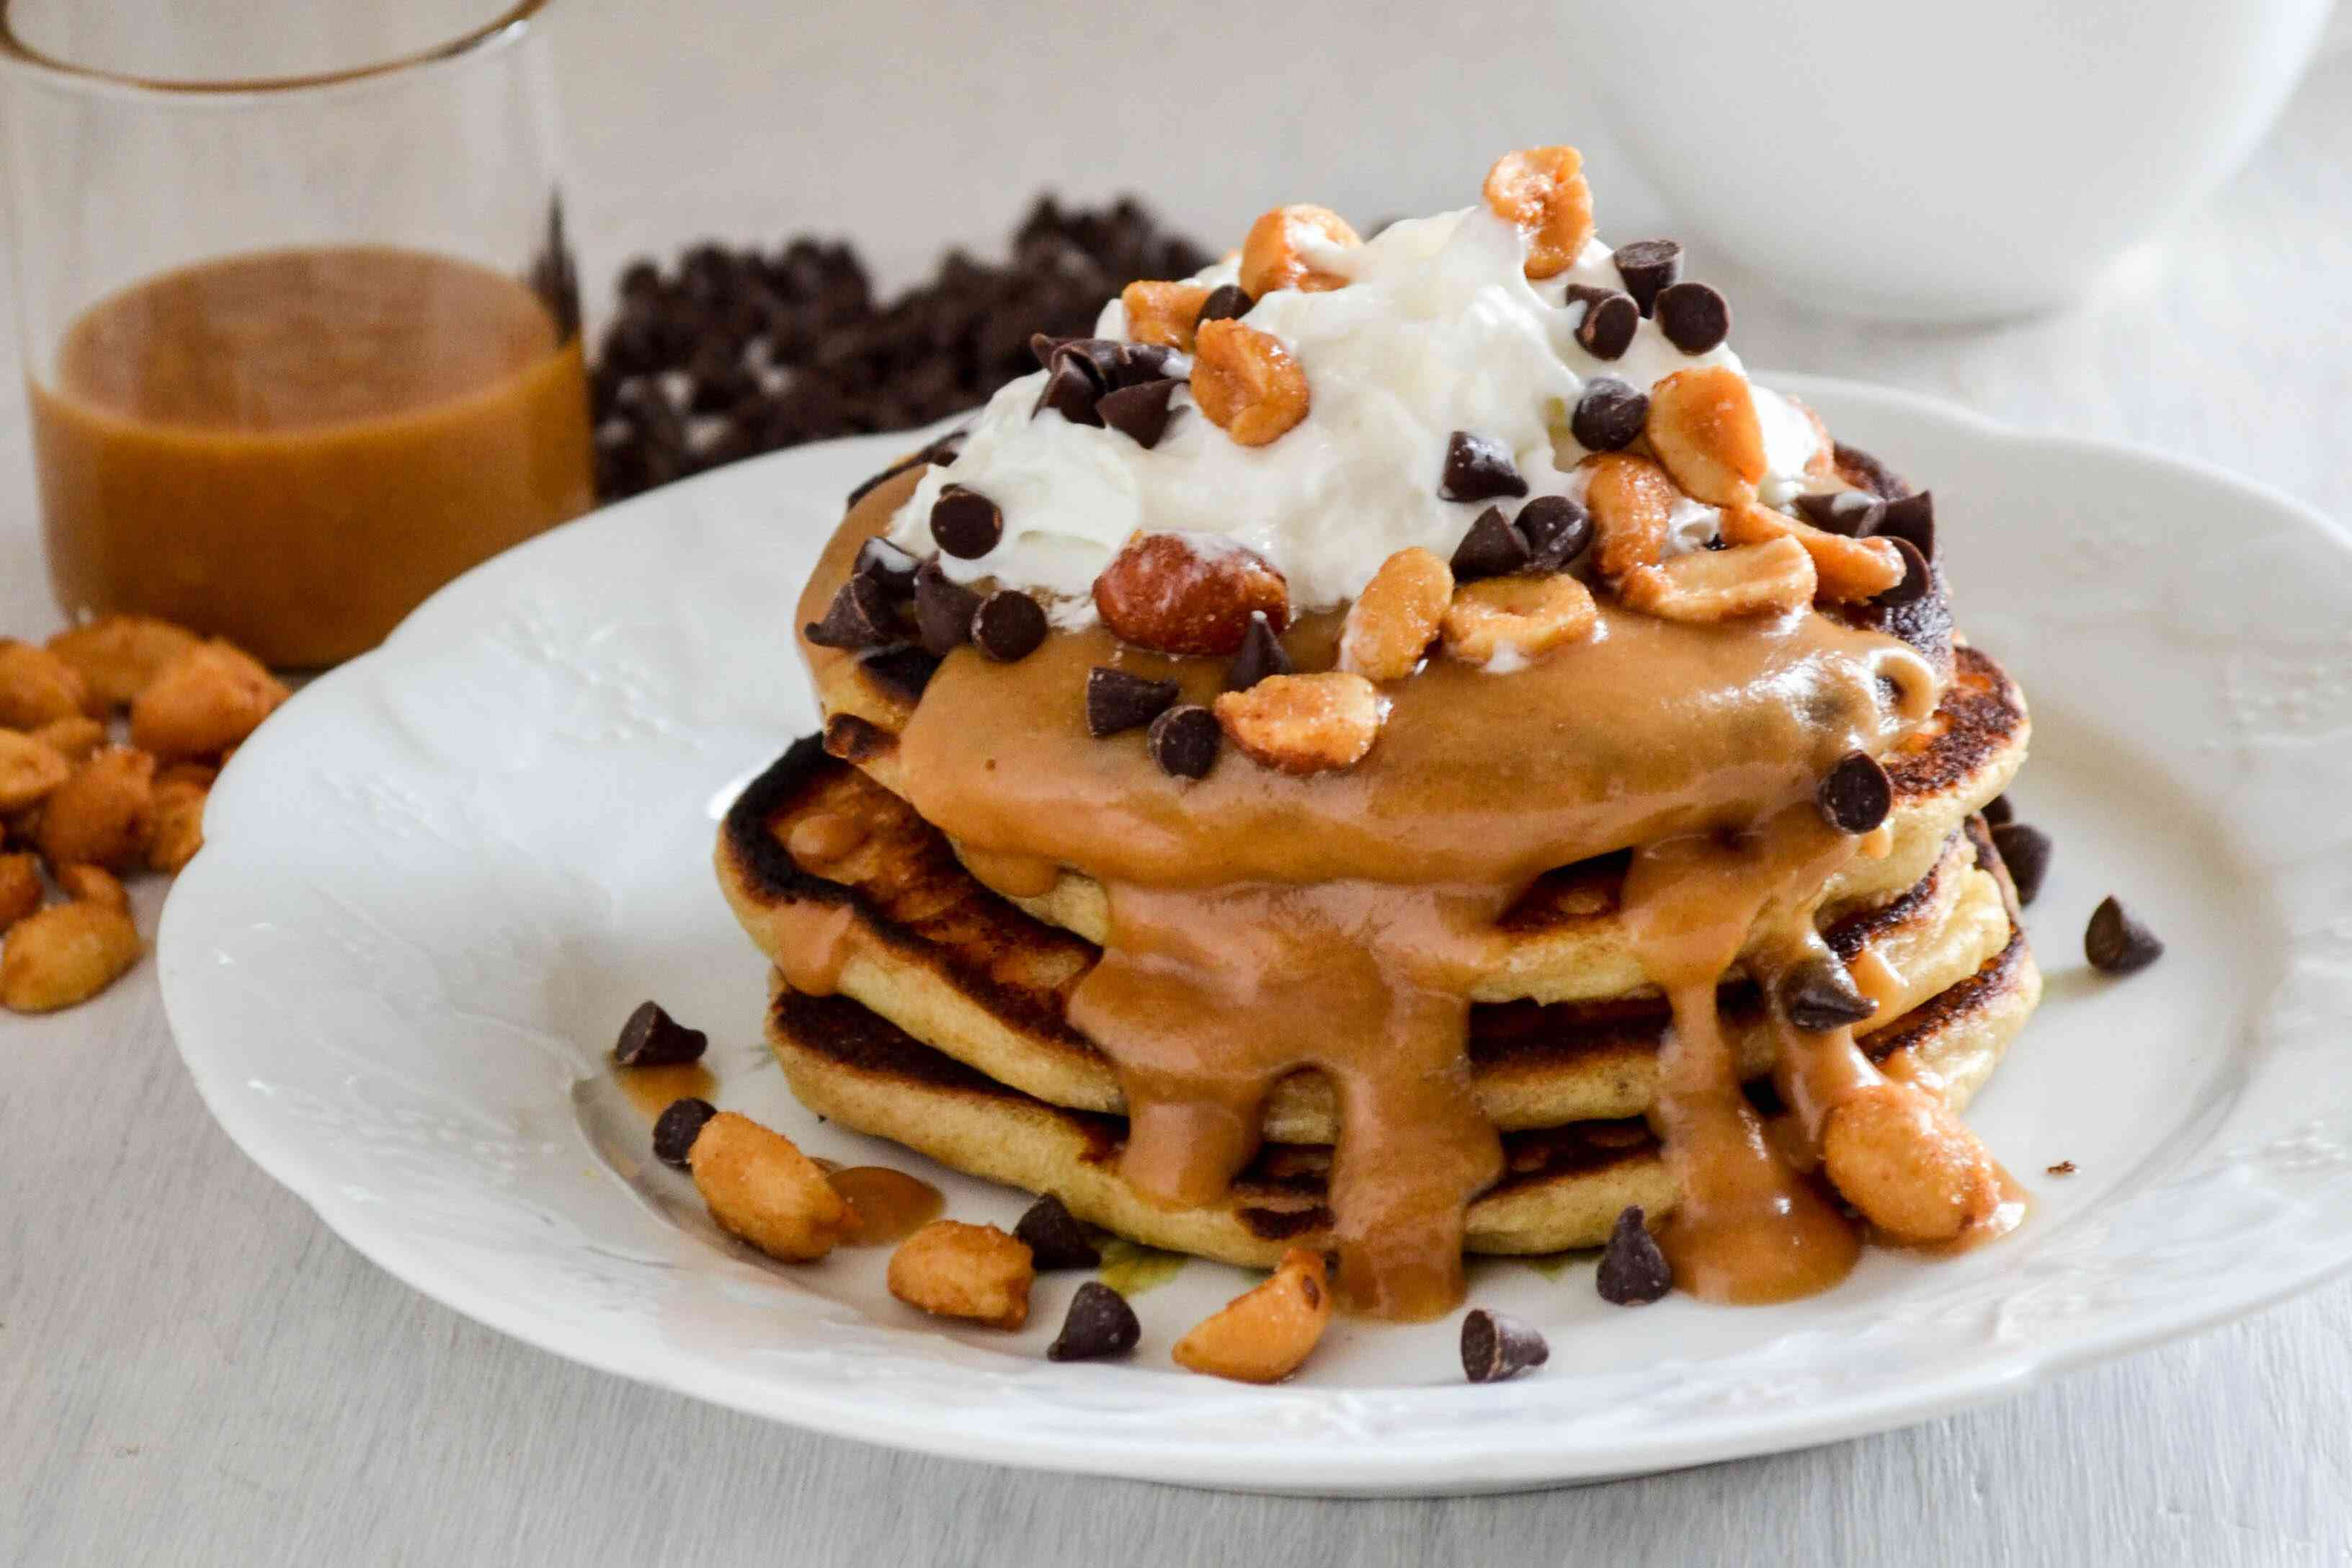 Peanut butter pancakes with maple-peanut butter syrup